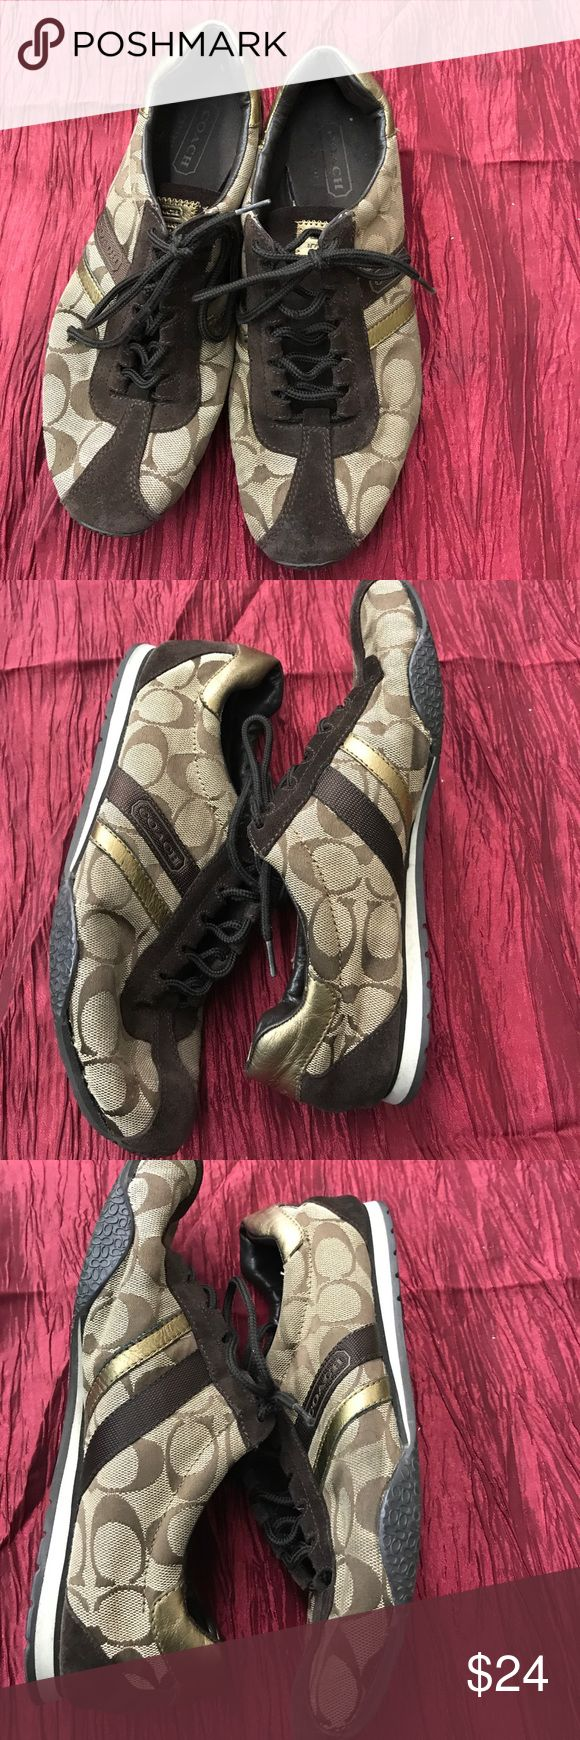 🇺🇸Authentic Coach Tennis shoes, gently worn Coach tennis shoe, brown and gold, small tear in last photo,  cute comfy shoe Coach Shoes Flats & Loafers